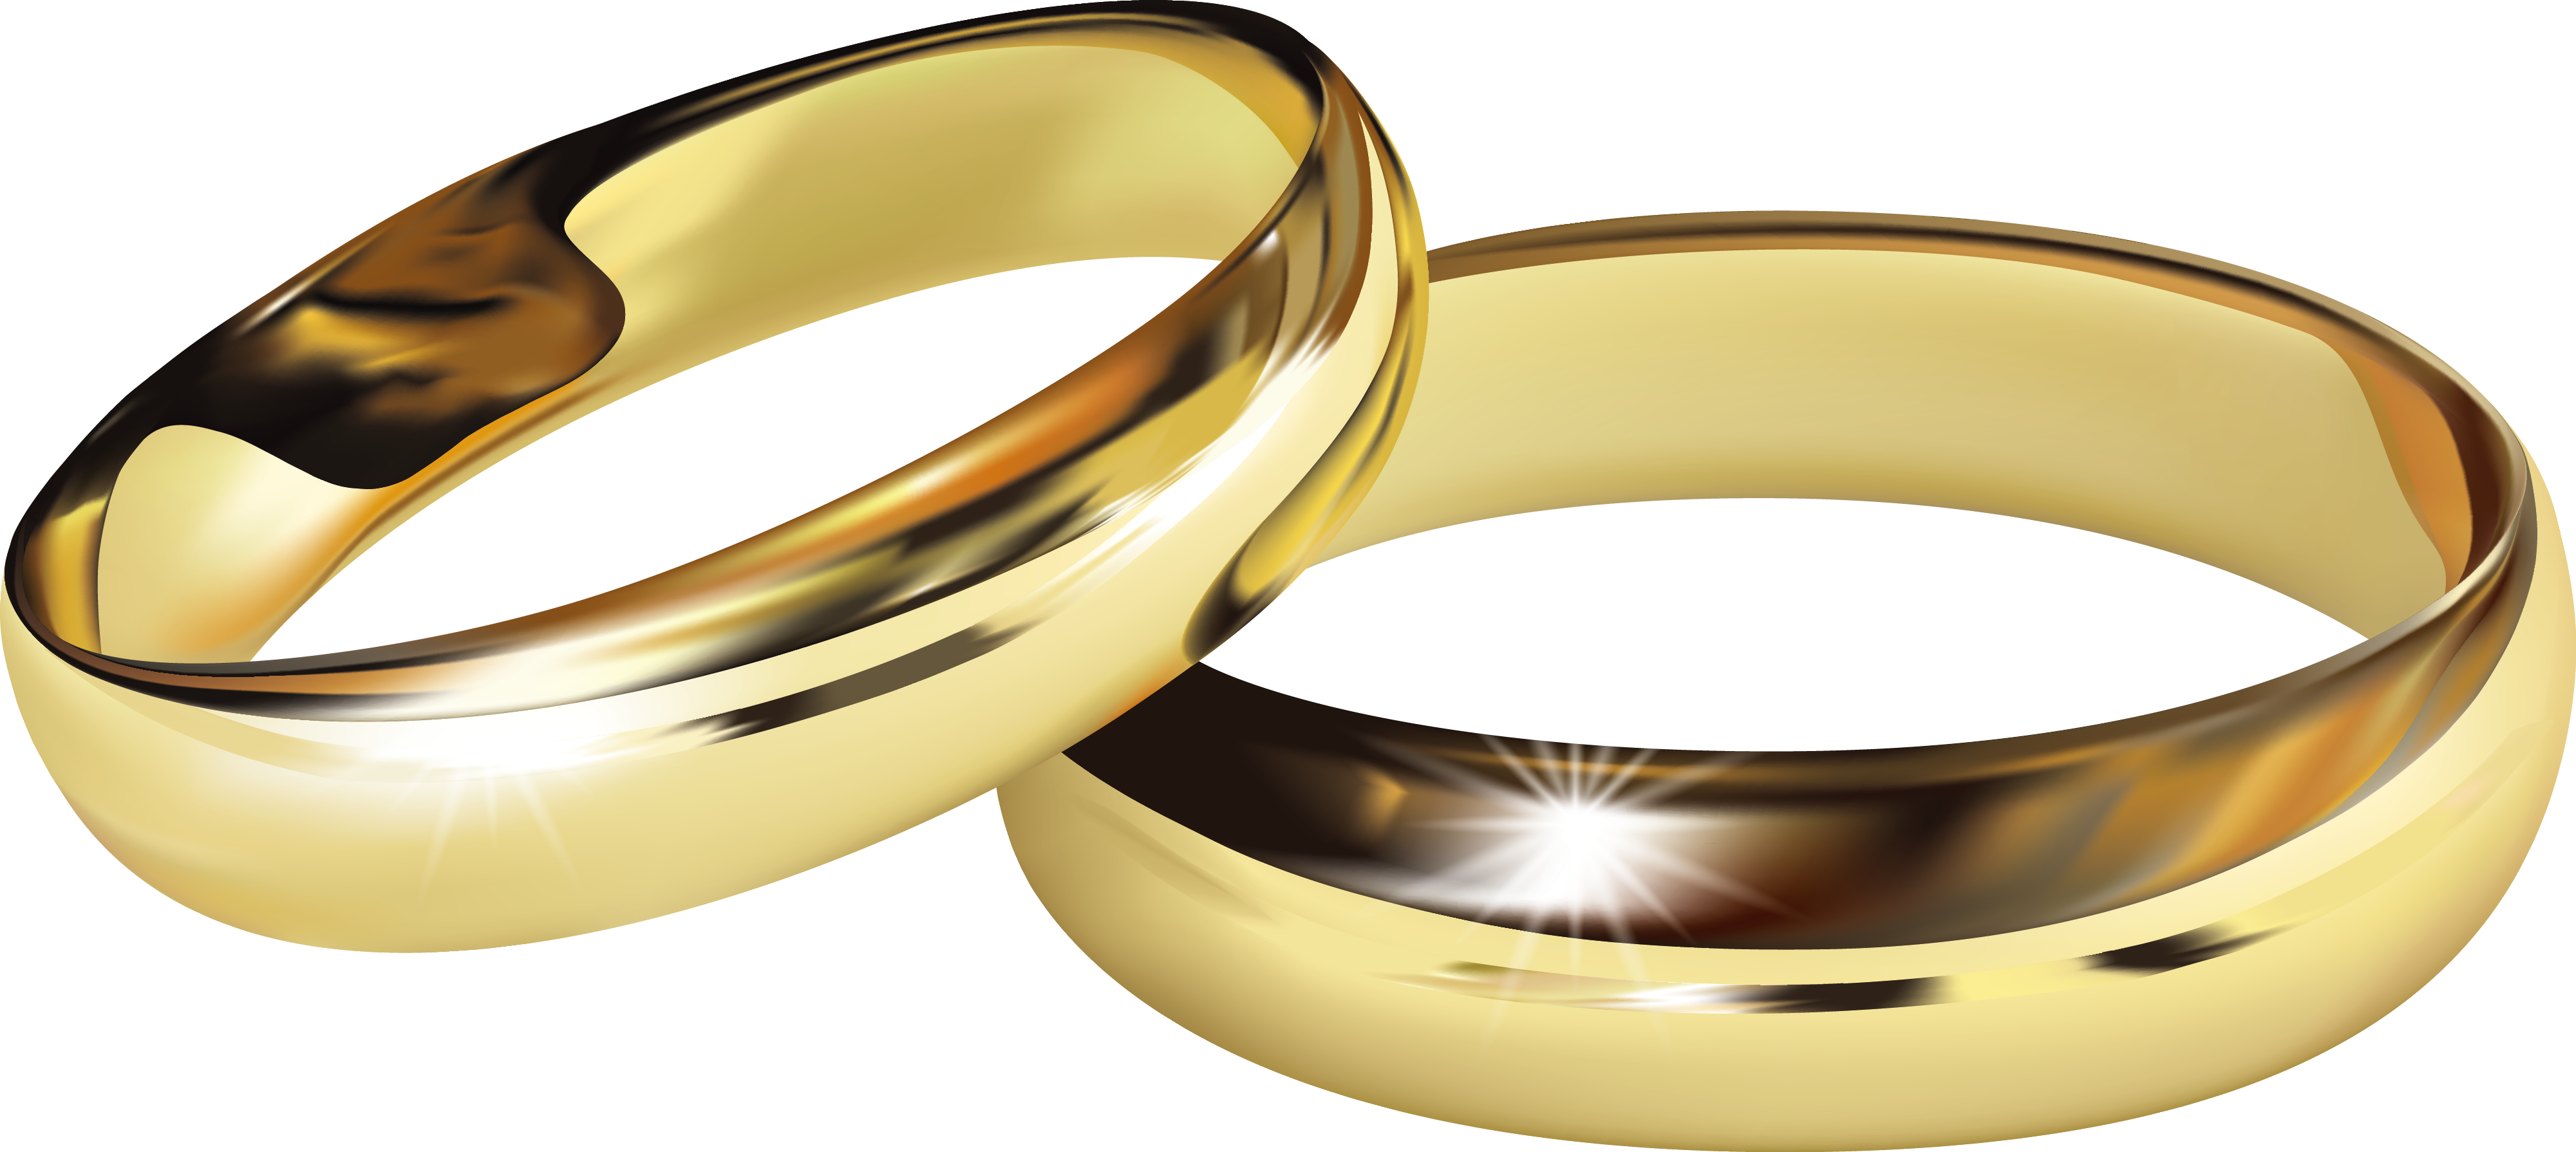 Wedding Ring Png Clipart Jewelry Ring Png Images Free